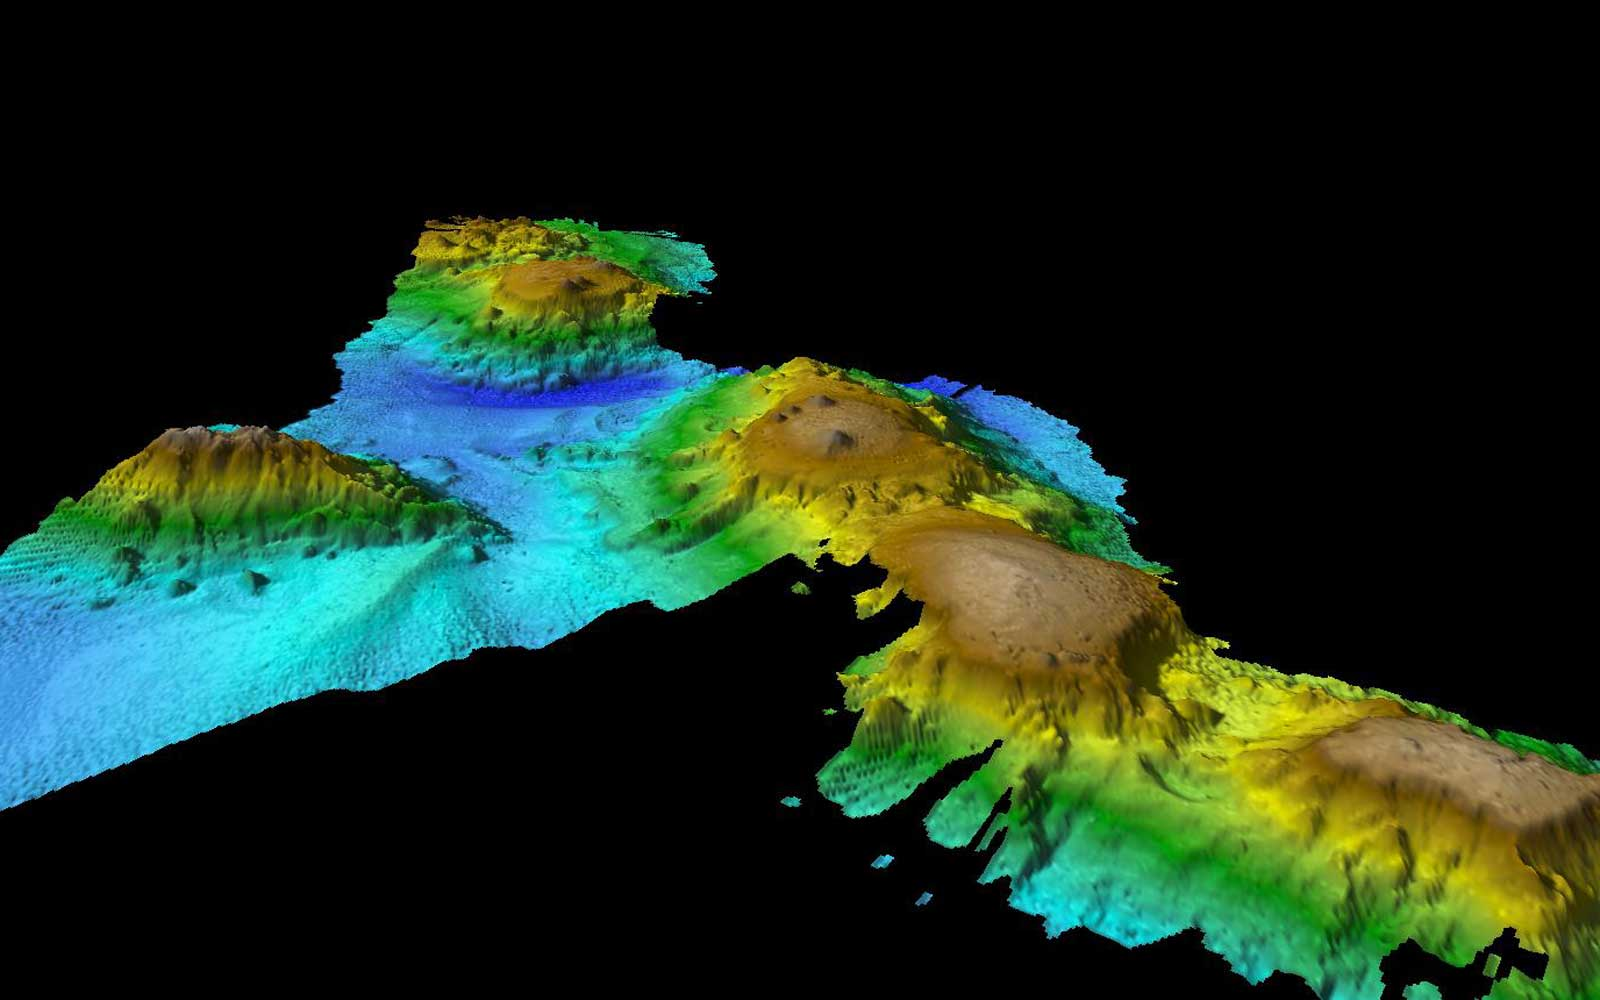 Researches have discovered a series of underwater volcanoes off of the coast of Tasmania.